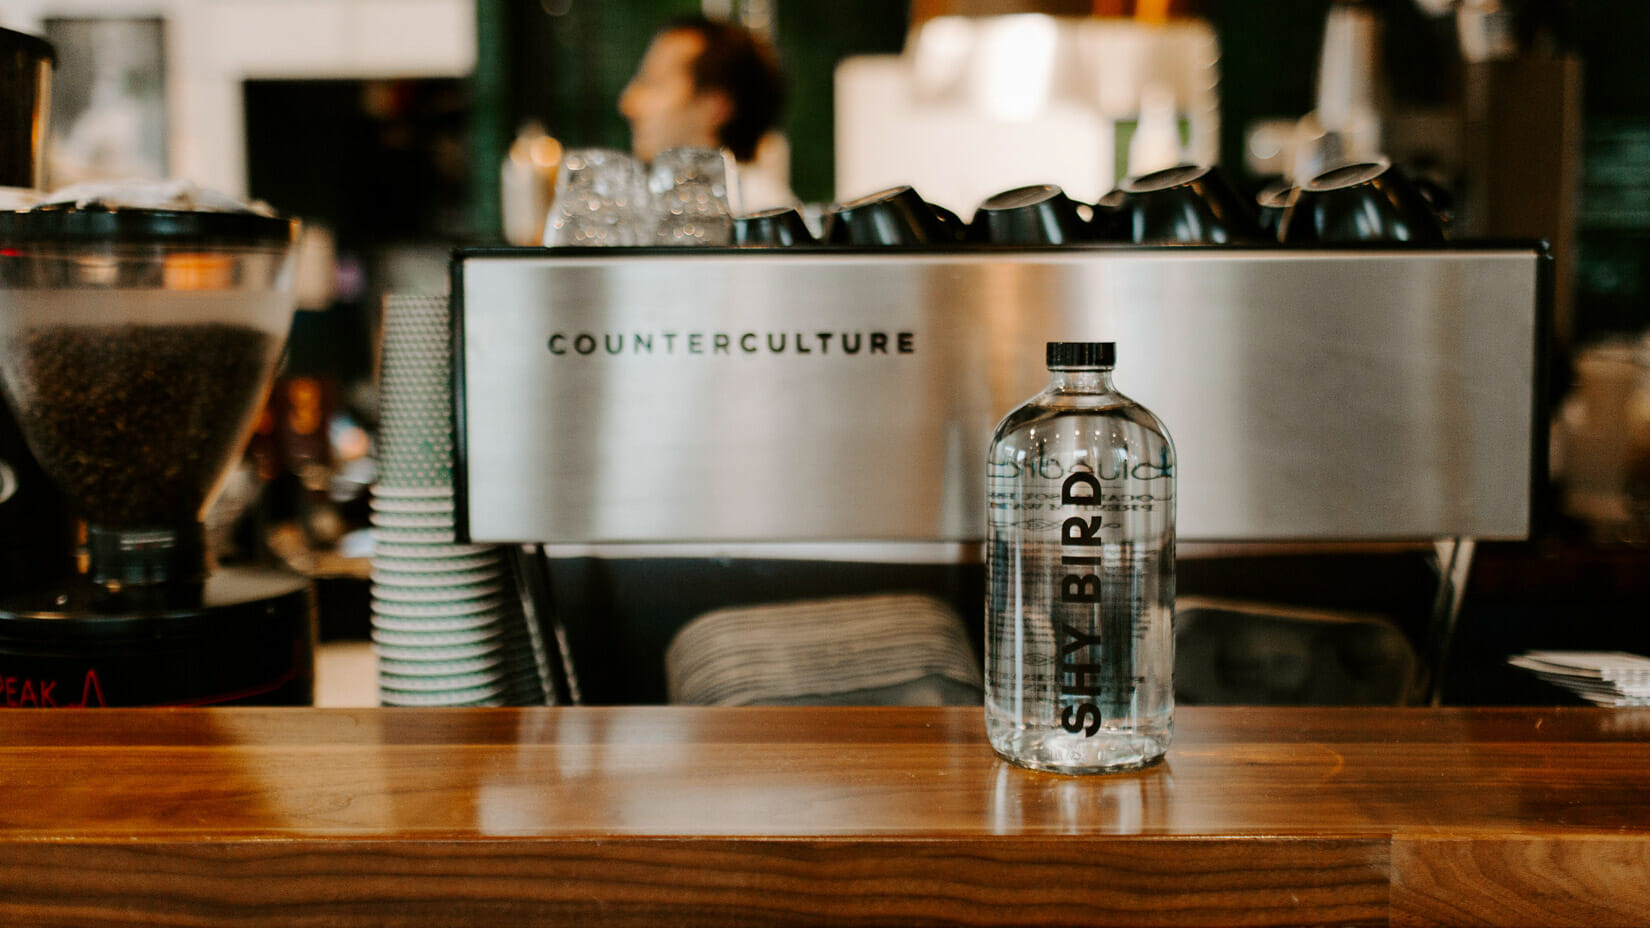 A custom branded bottle on a counter at a restaurant.